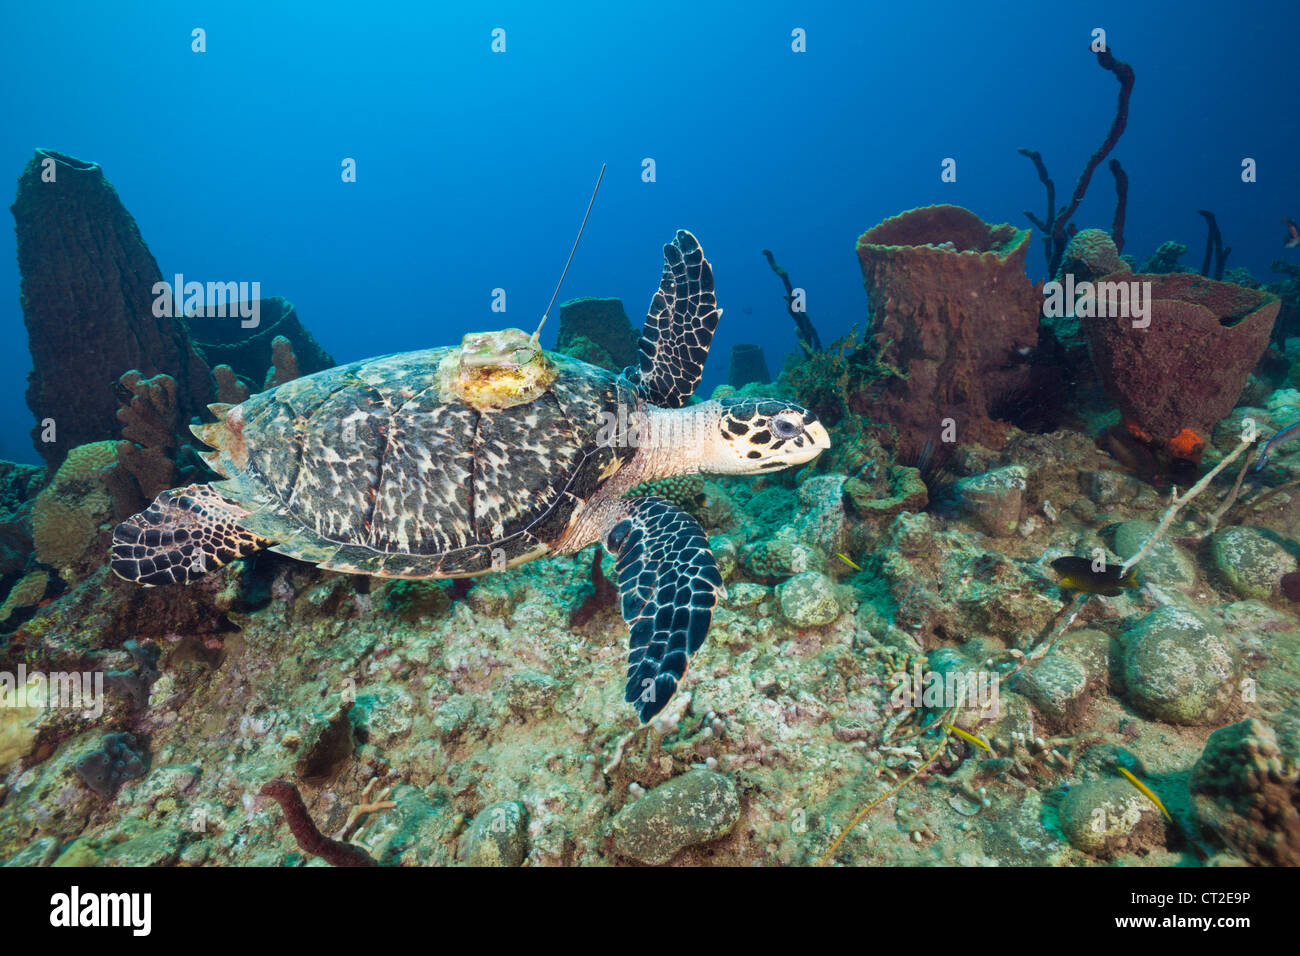 Hawksbill Turtle tagged with Transmitter, Eretmochelys imbriocota, Caribbean Sea, Dominica Stock Photo